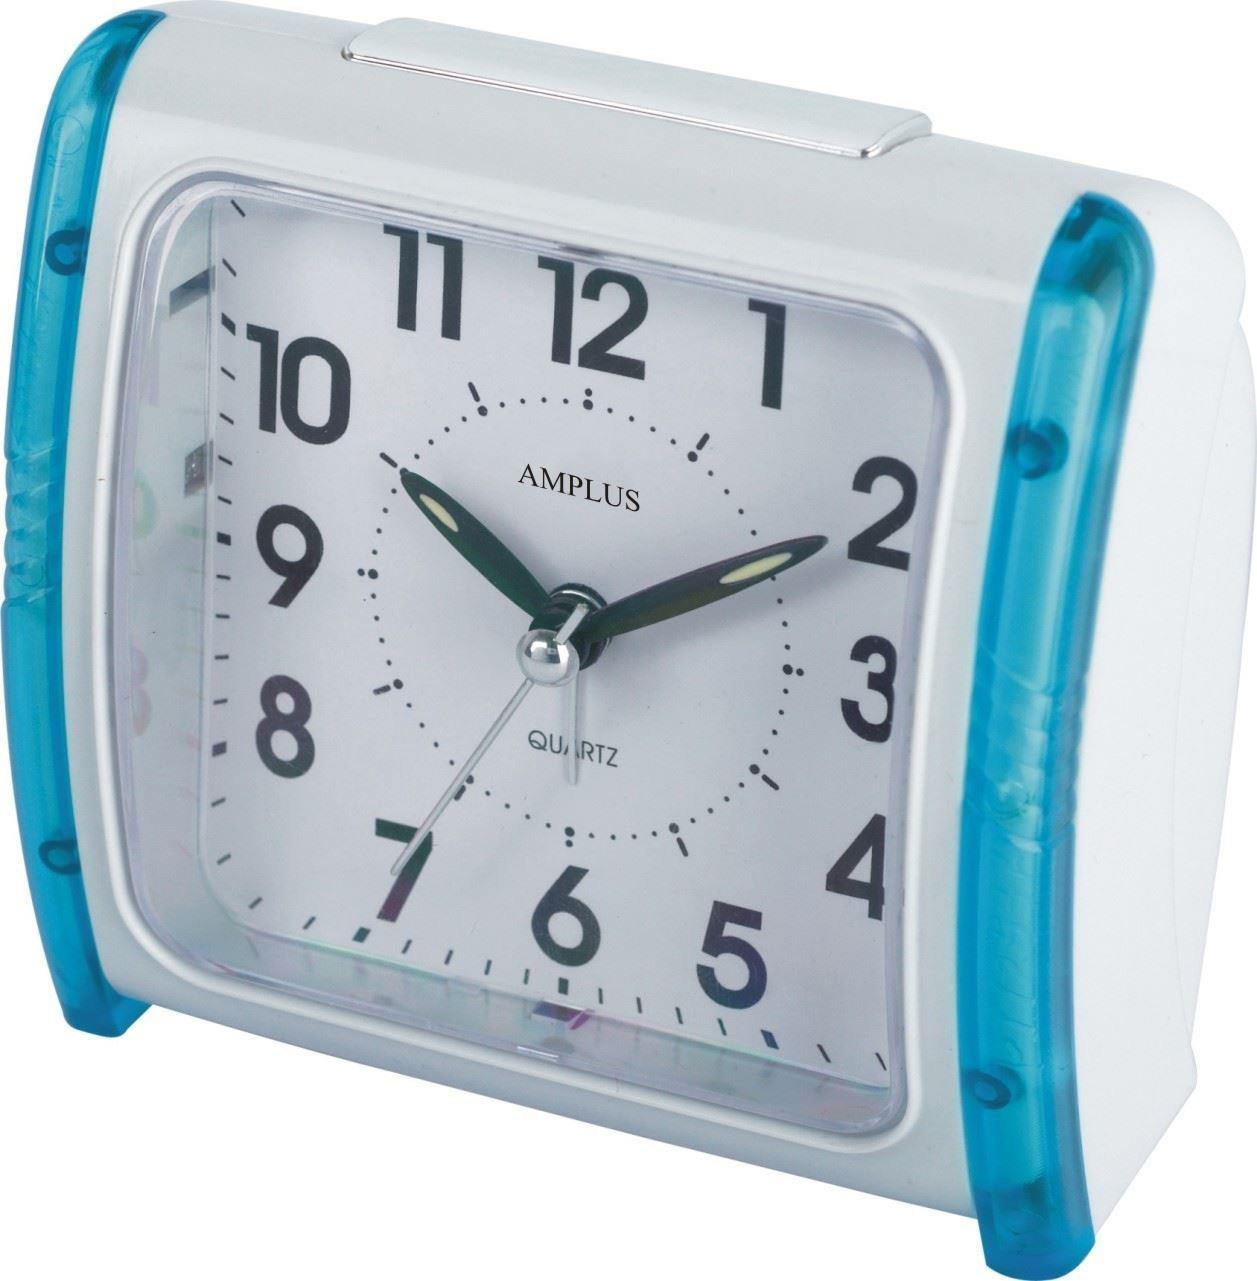 Bedside Table Clocks Amplus Bedside Table Travel Alarm Clock With Blue Light